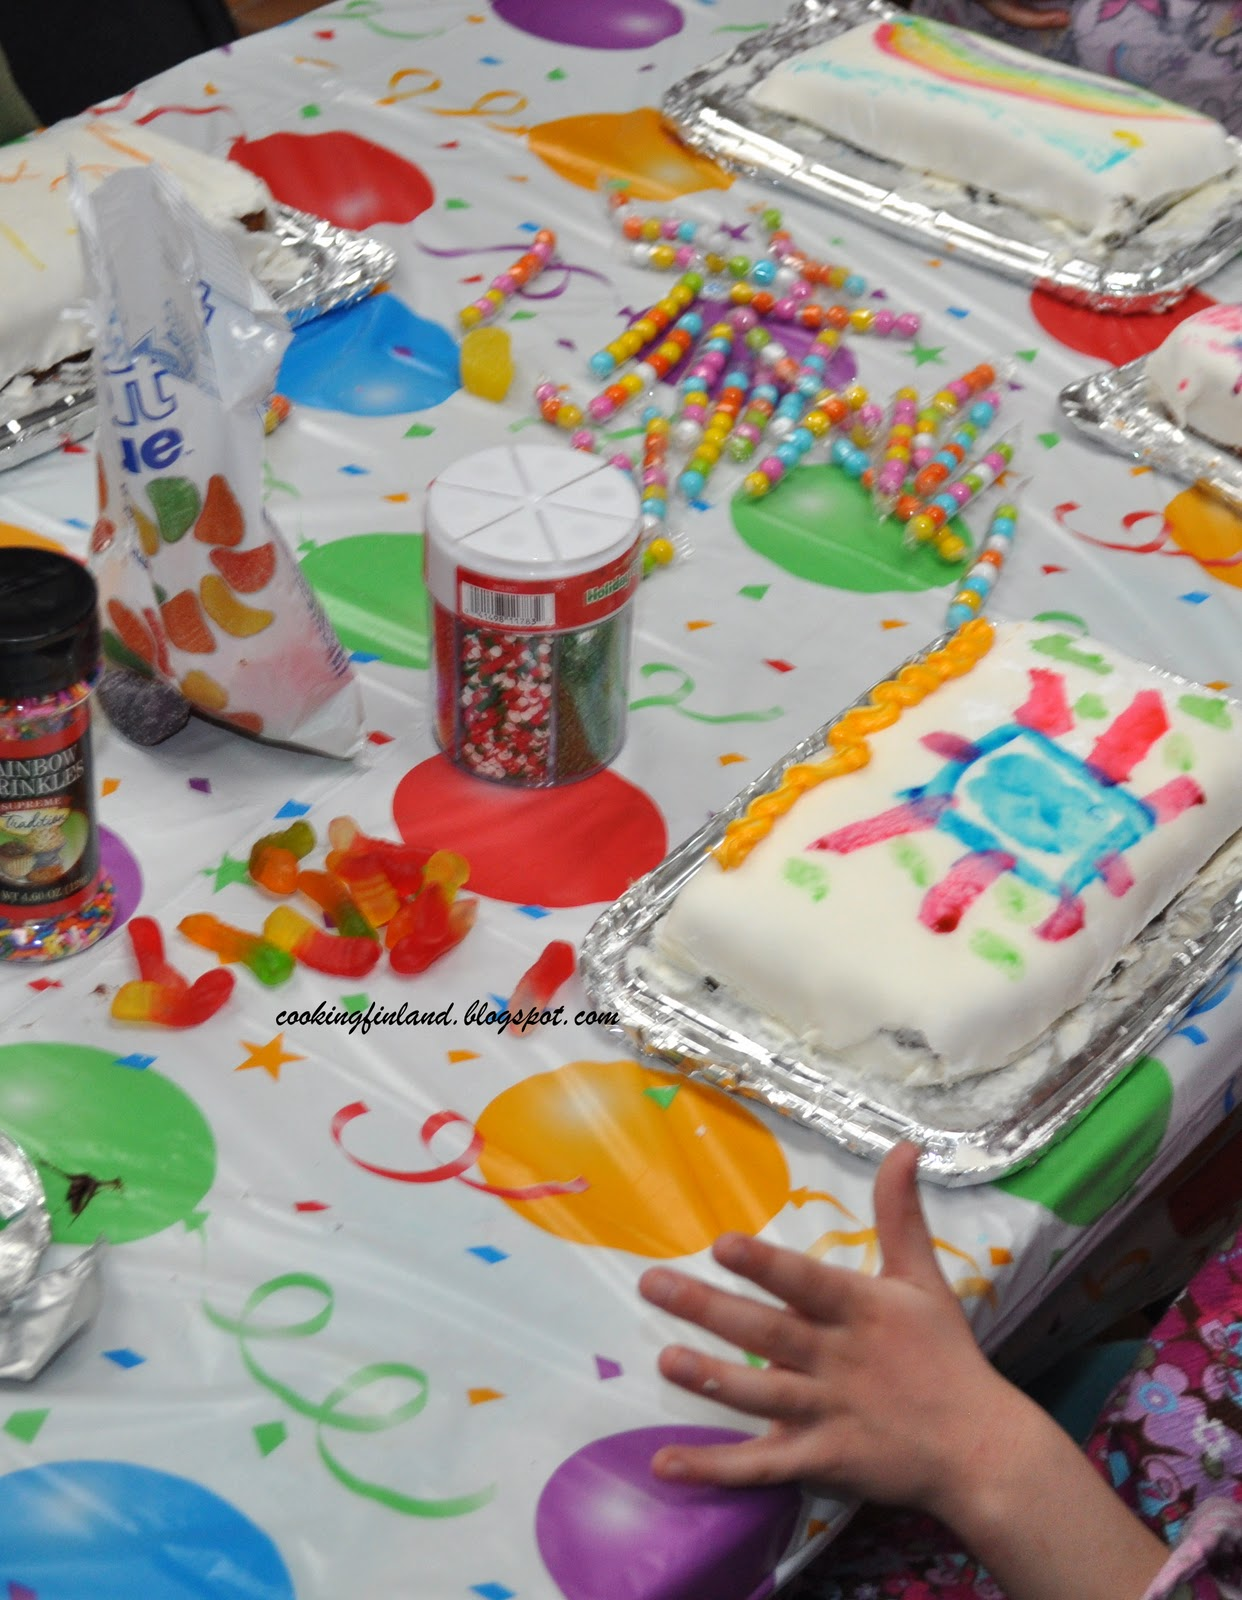 Cooking Finland A Cake Decorating Kids Birthday Party